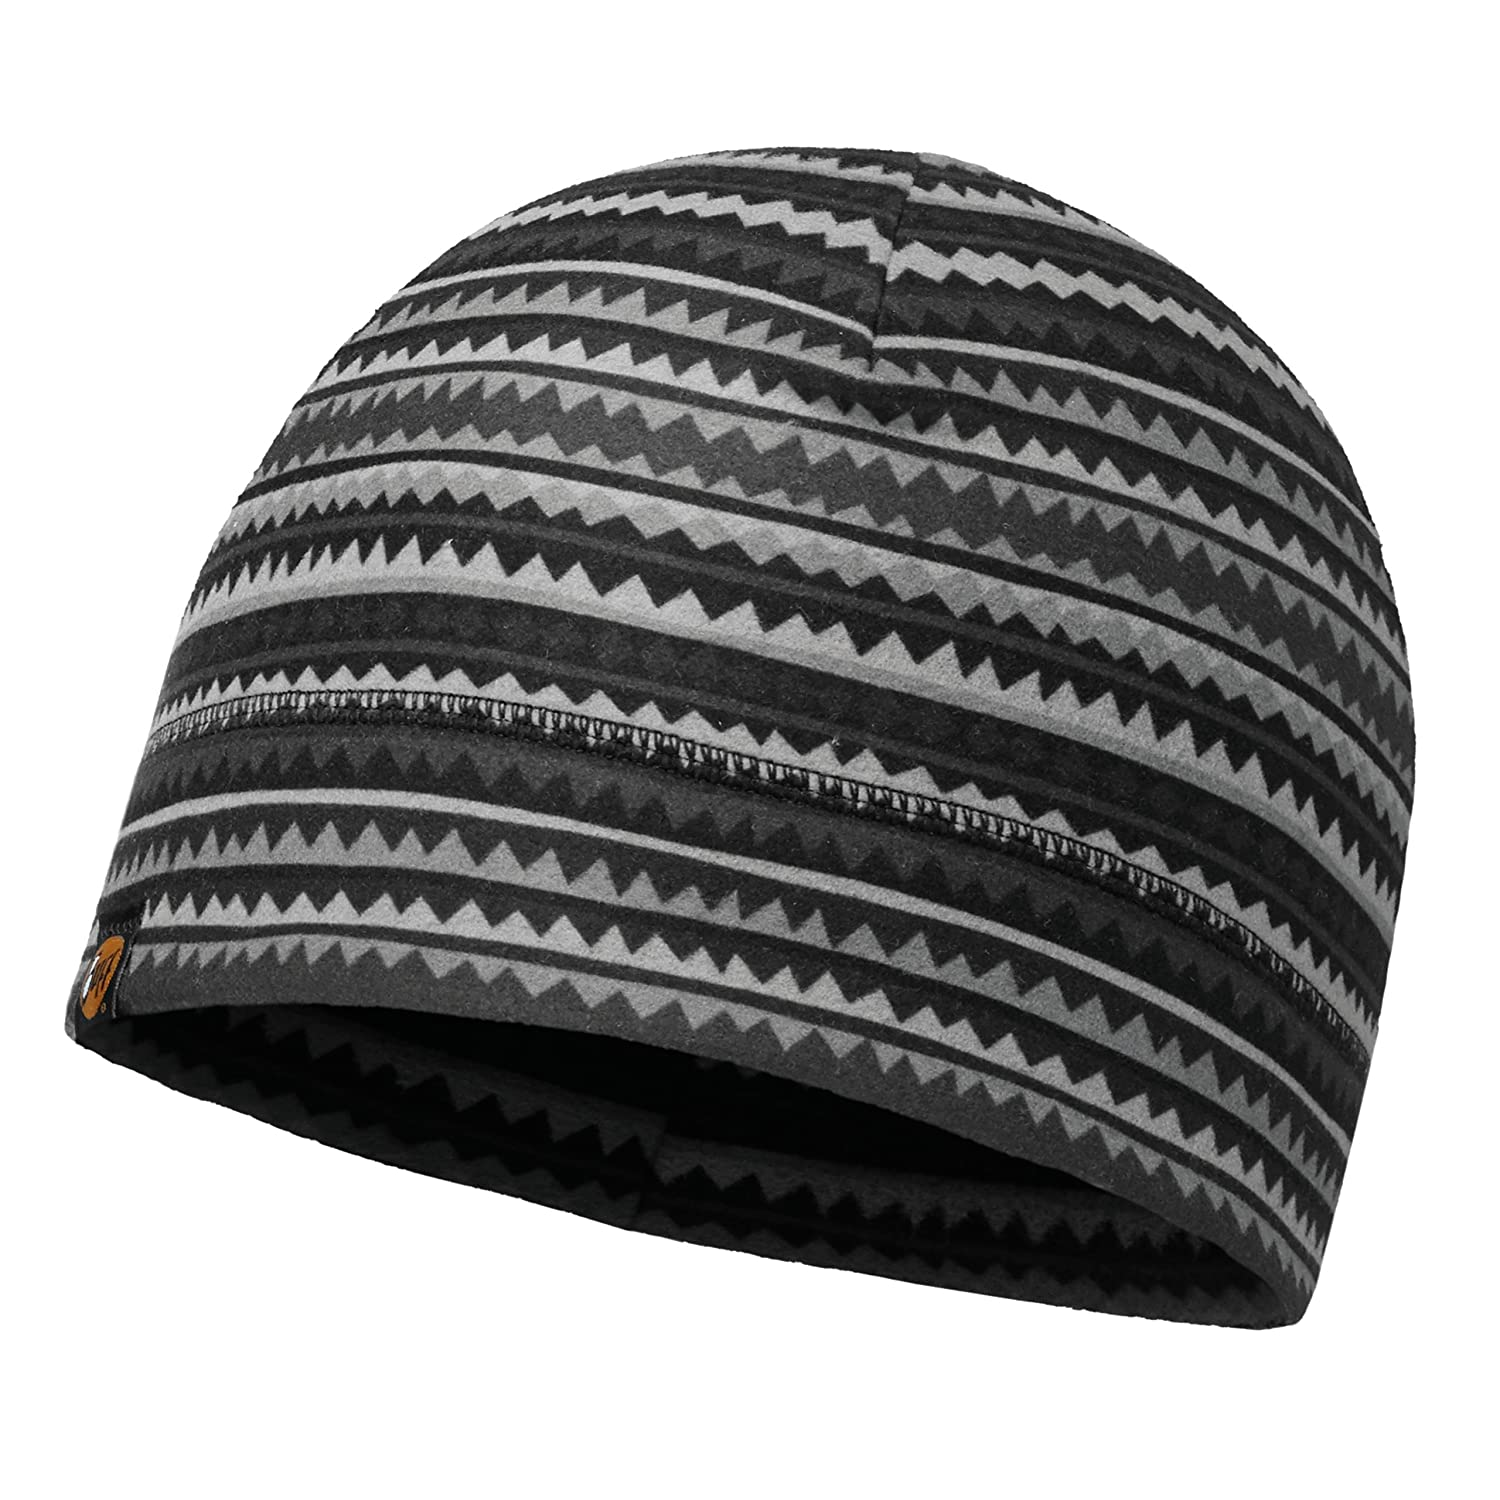 Buff, Gorro de forro polar Unisex Adult, Multicolor (Picus Grey), Talla Única Original Buff 113172.937.10.00